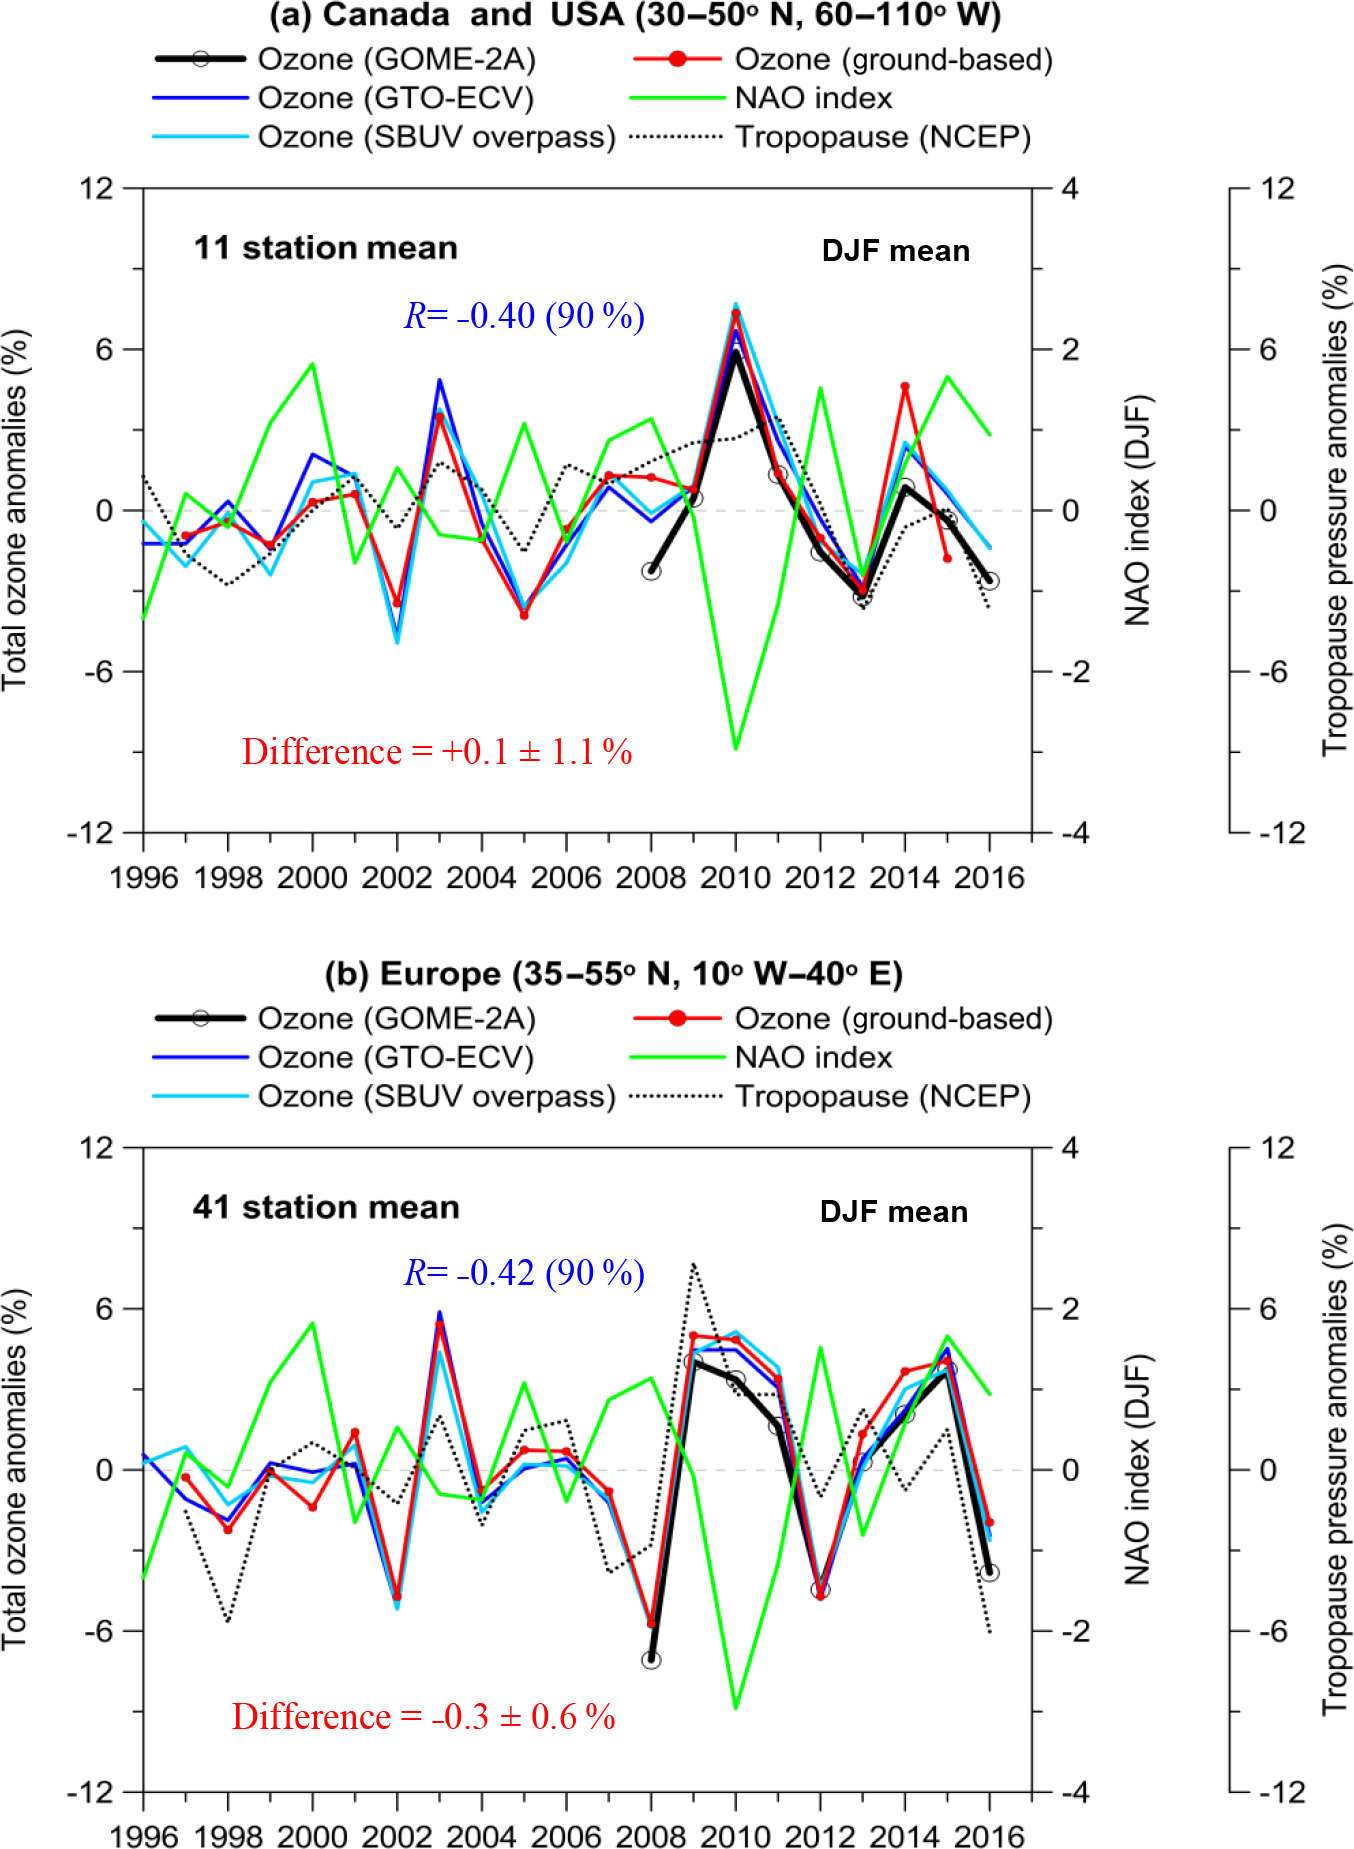 AMT - The use of QBO, ENSO, and NAO perturbations in the